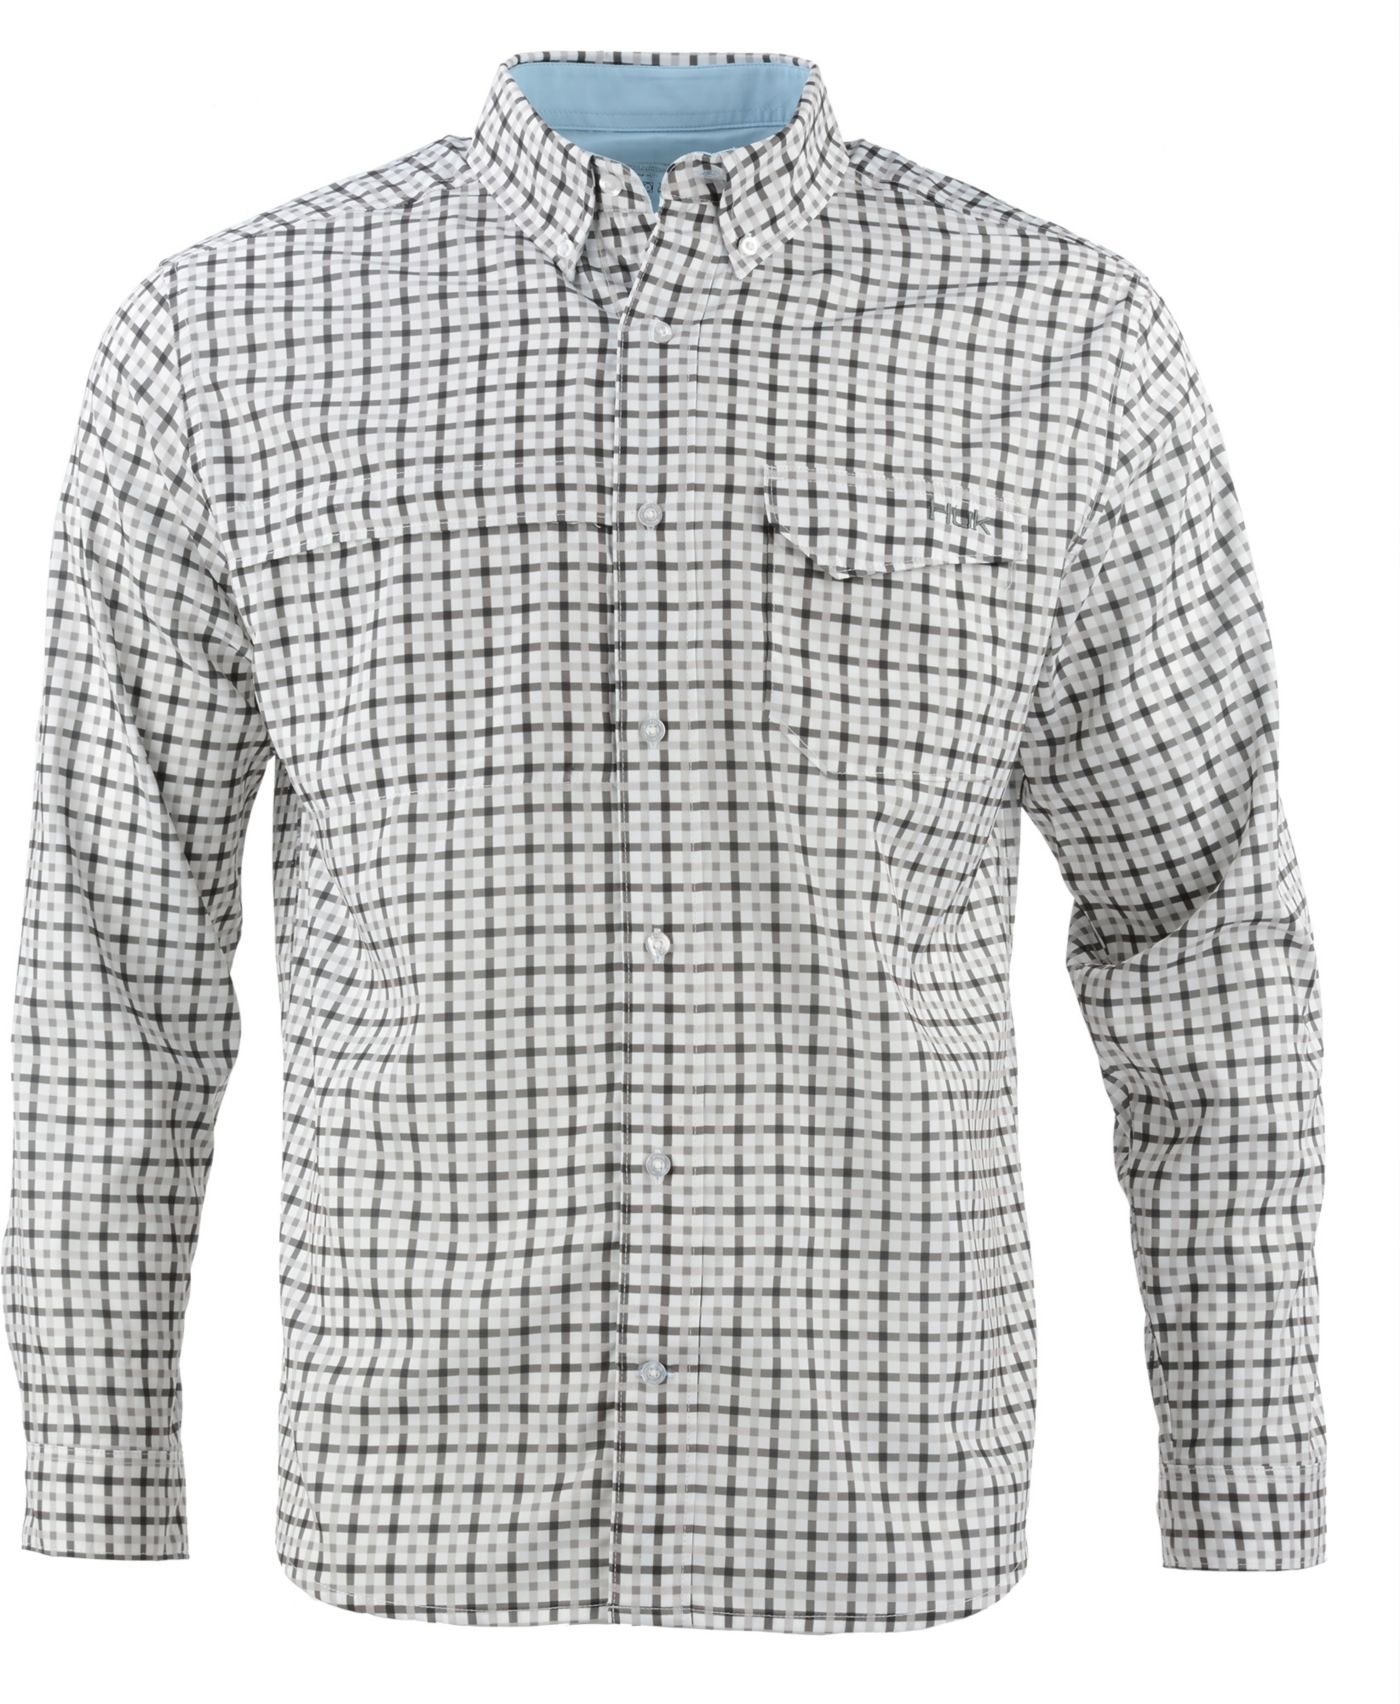 HUK Men's Tide Point Woven Plaid Button Down Long Sleeve Shirt